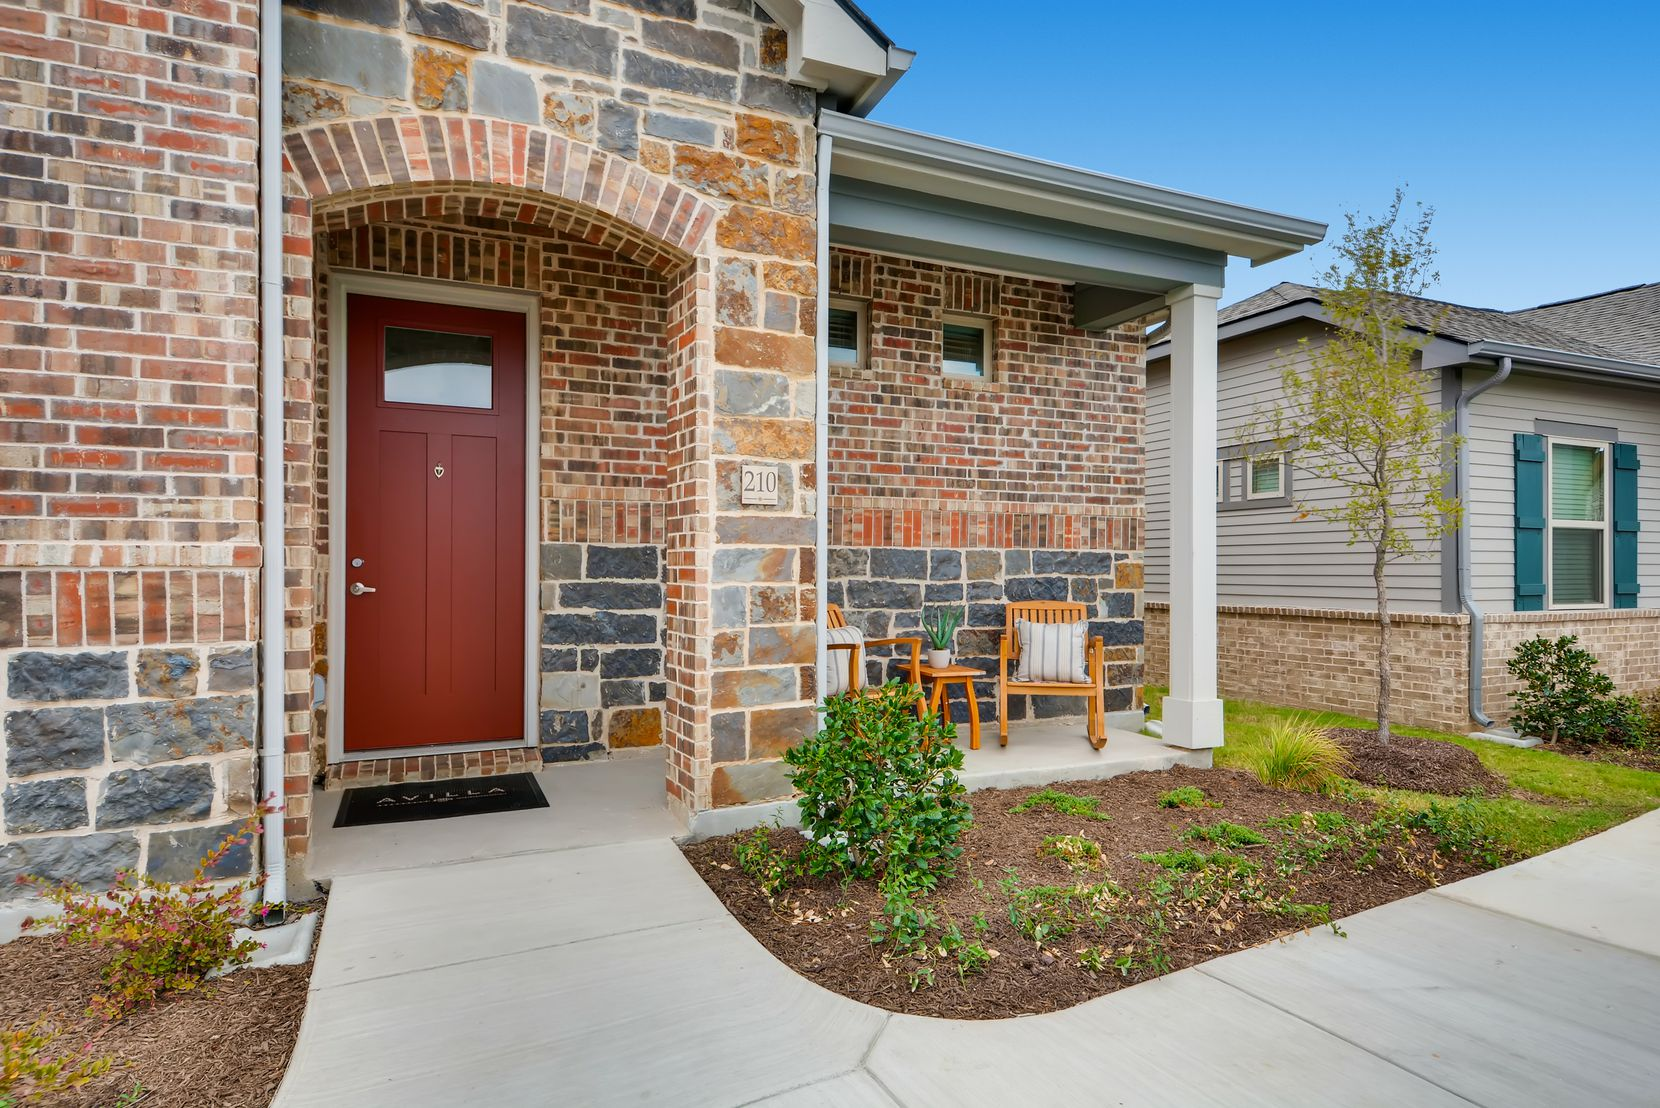 NexMetro Communities has more than a dozen rental home projects in North Texas, including this one in Grand Prairie.